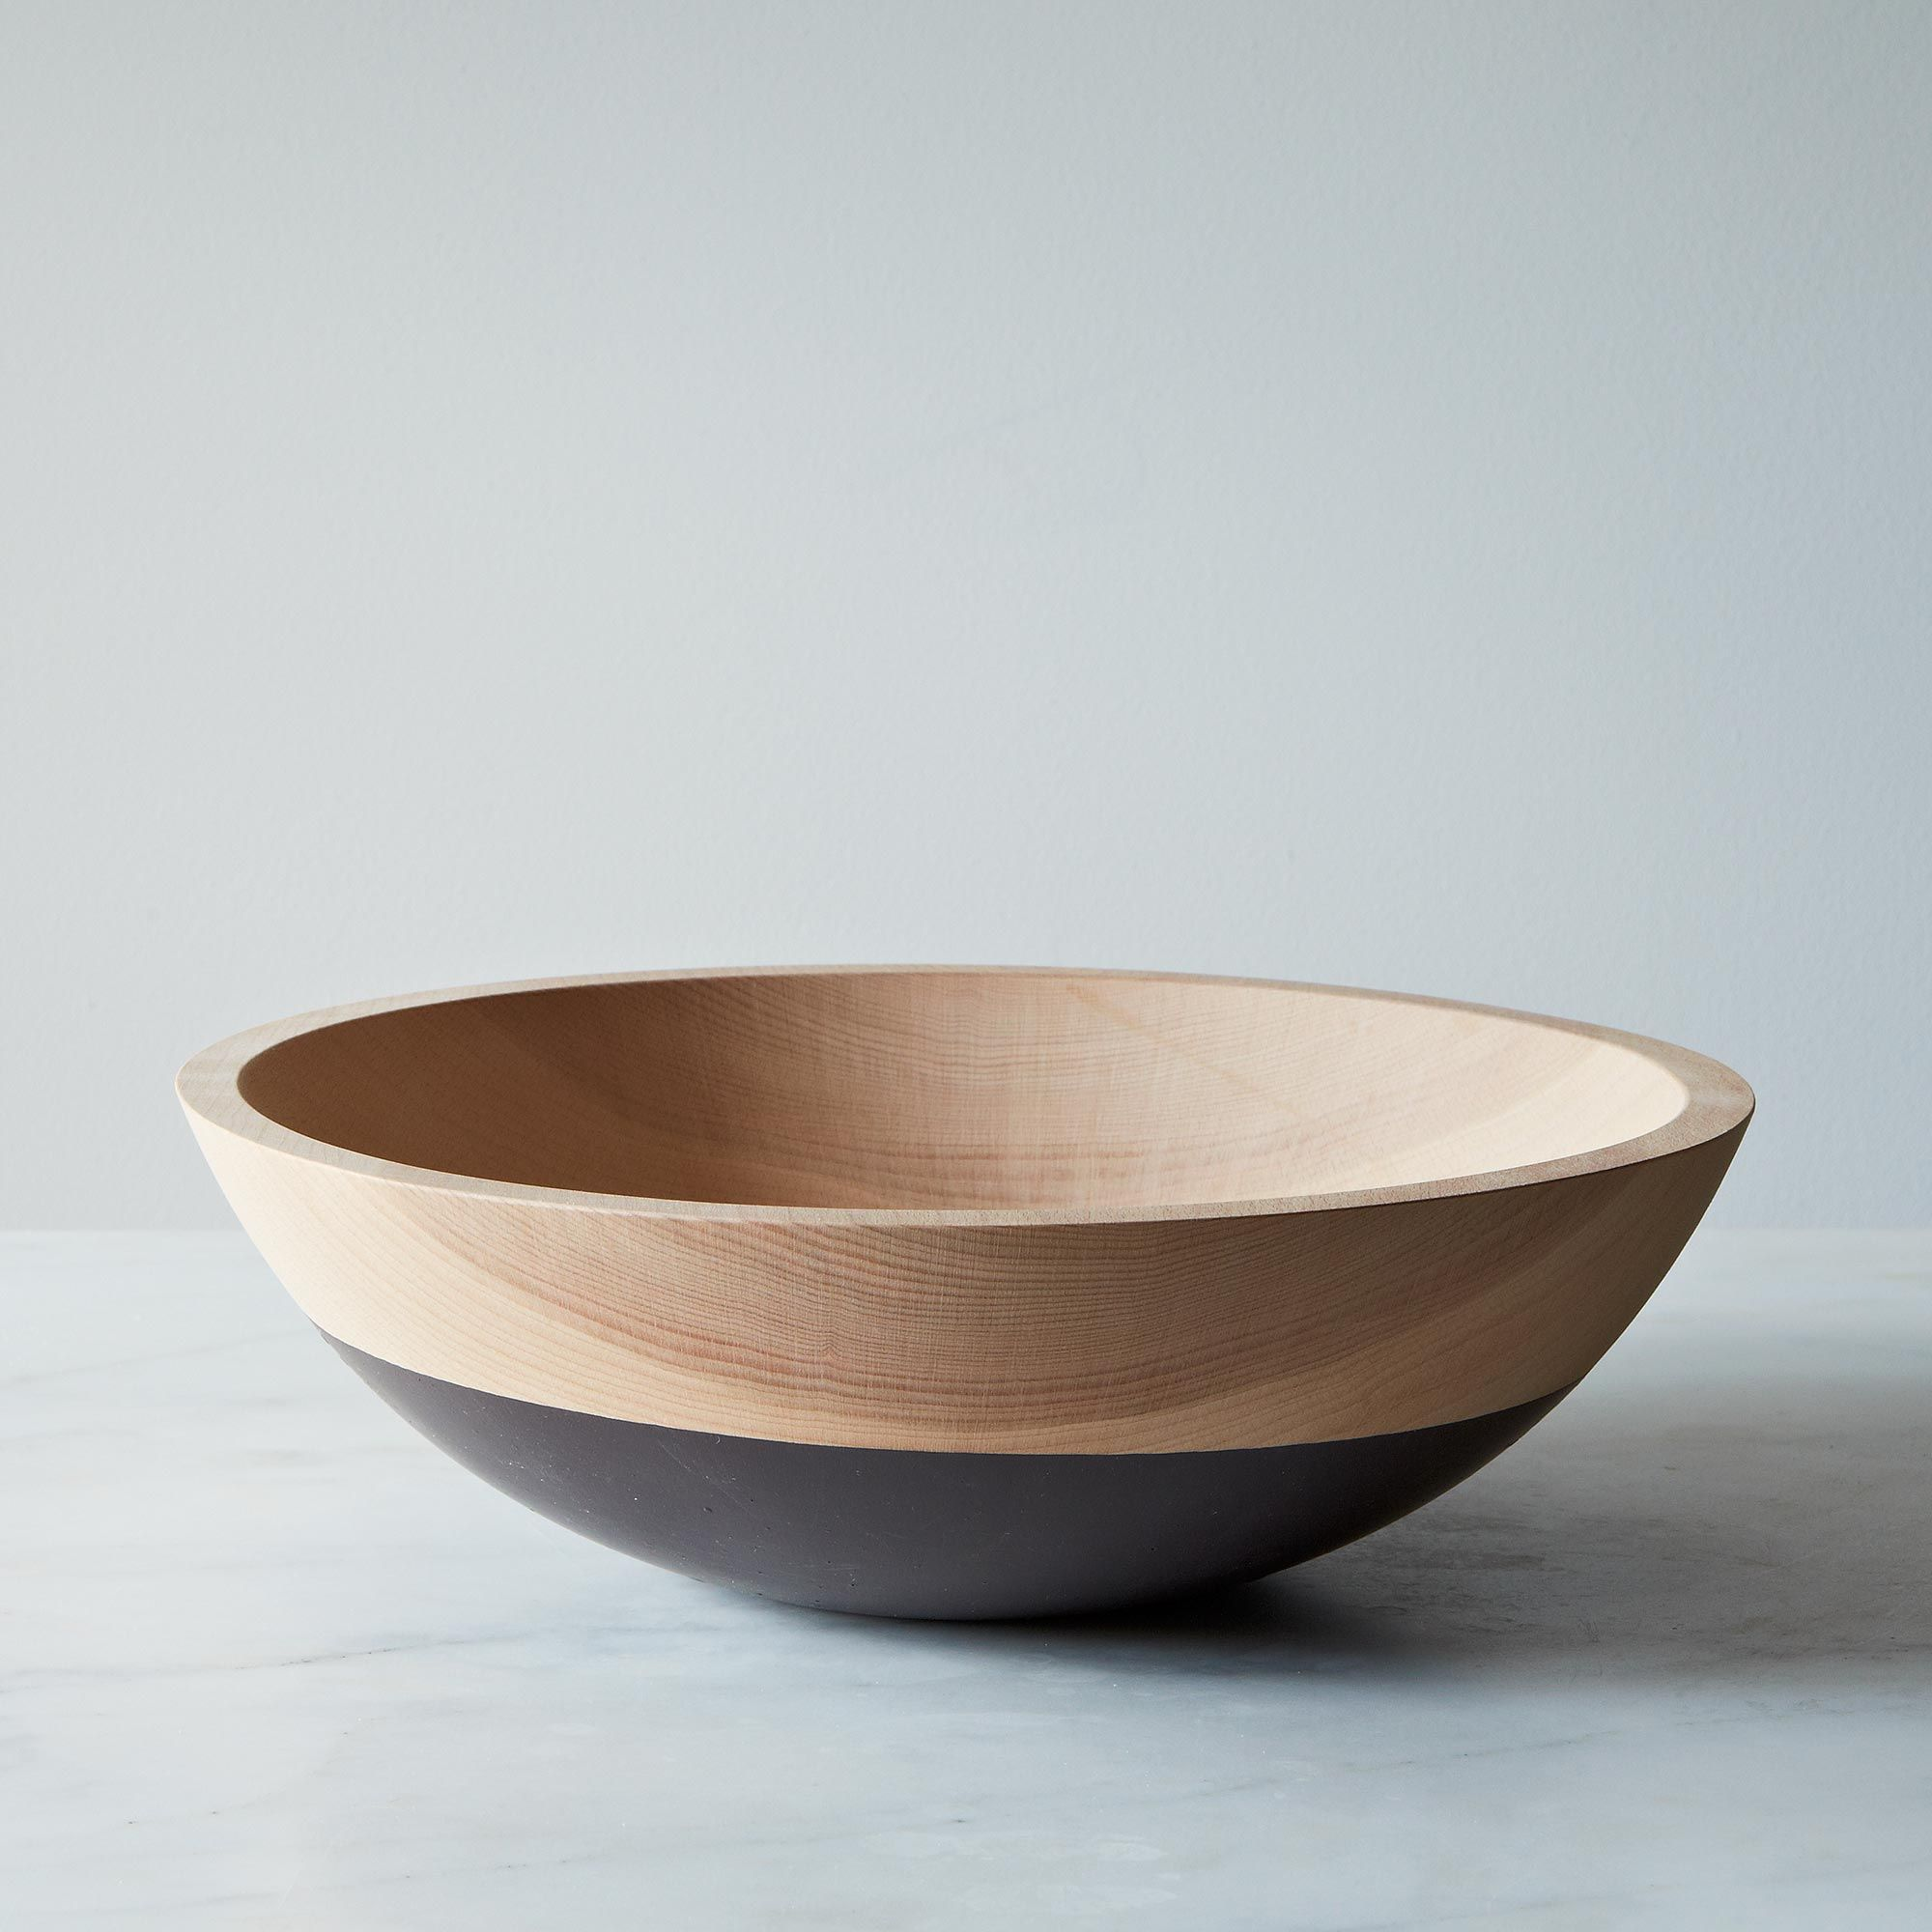 3aad117a a0f5 11e5 a190 0ef7535729df  2013 0723 wind and willow exclusive food52 hand dipped beech wood bowl 12in 013 1